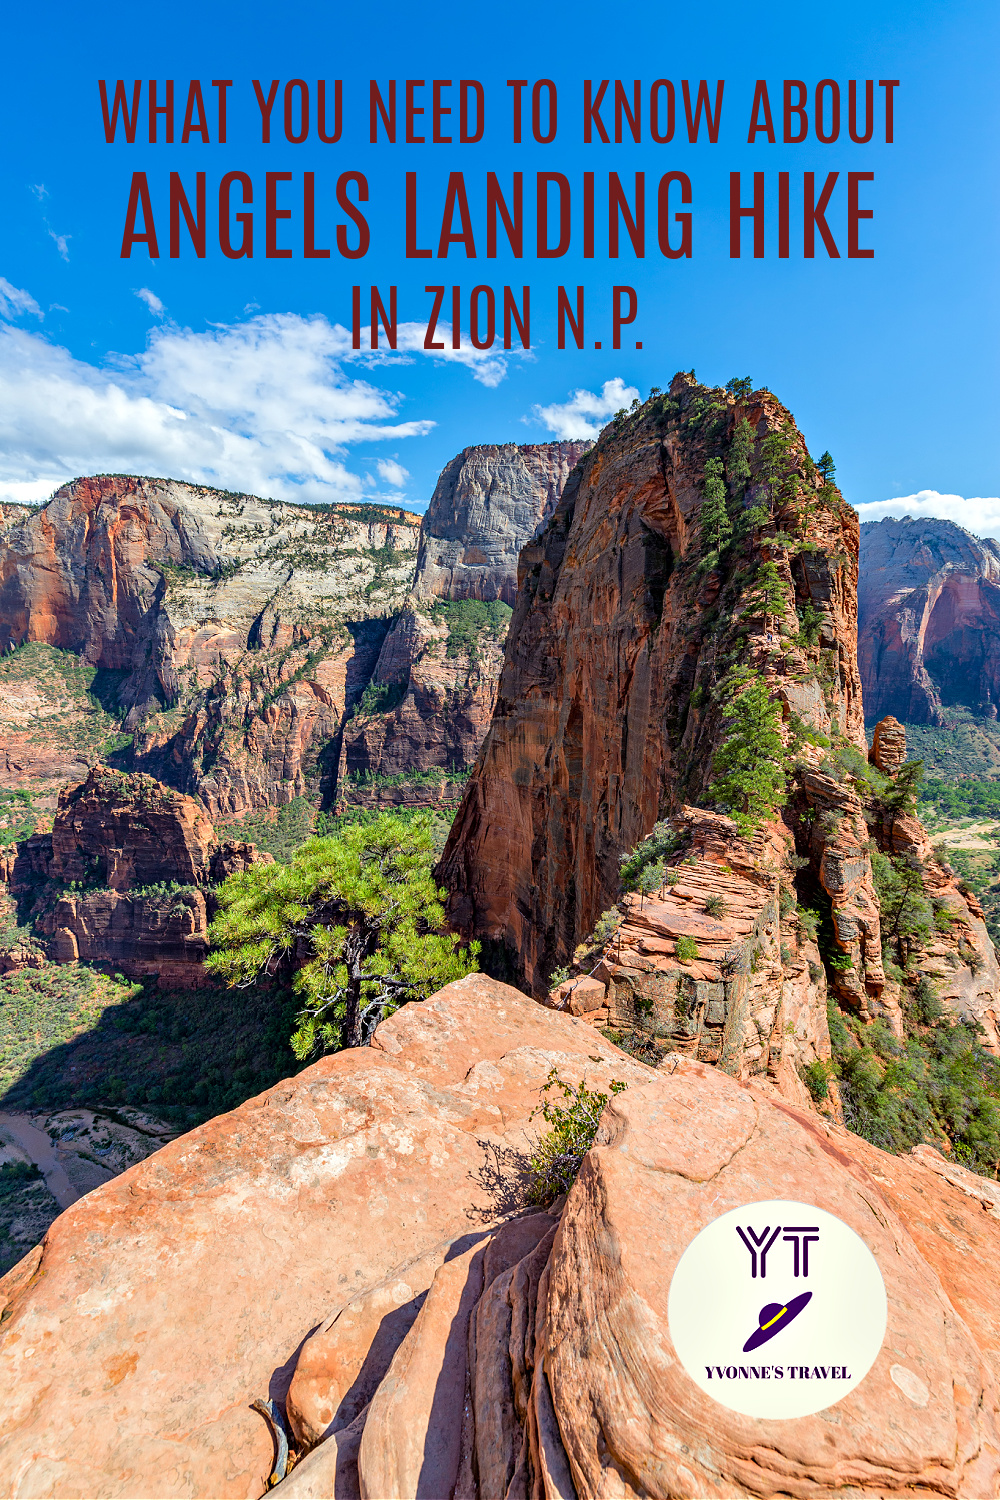 Vertical view of Angles Landing hike. This famous hike offers an incredible experience, if you have what it takes to face the challenge. Here is all you need to know. #angelslandingzion #angelslandinghike #hikinginzionnationalpark #utahhiking